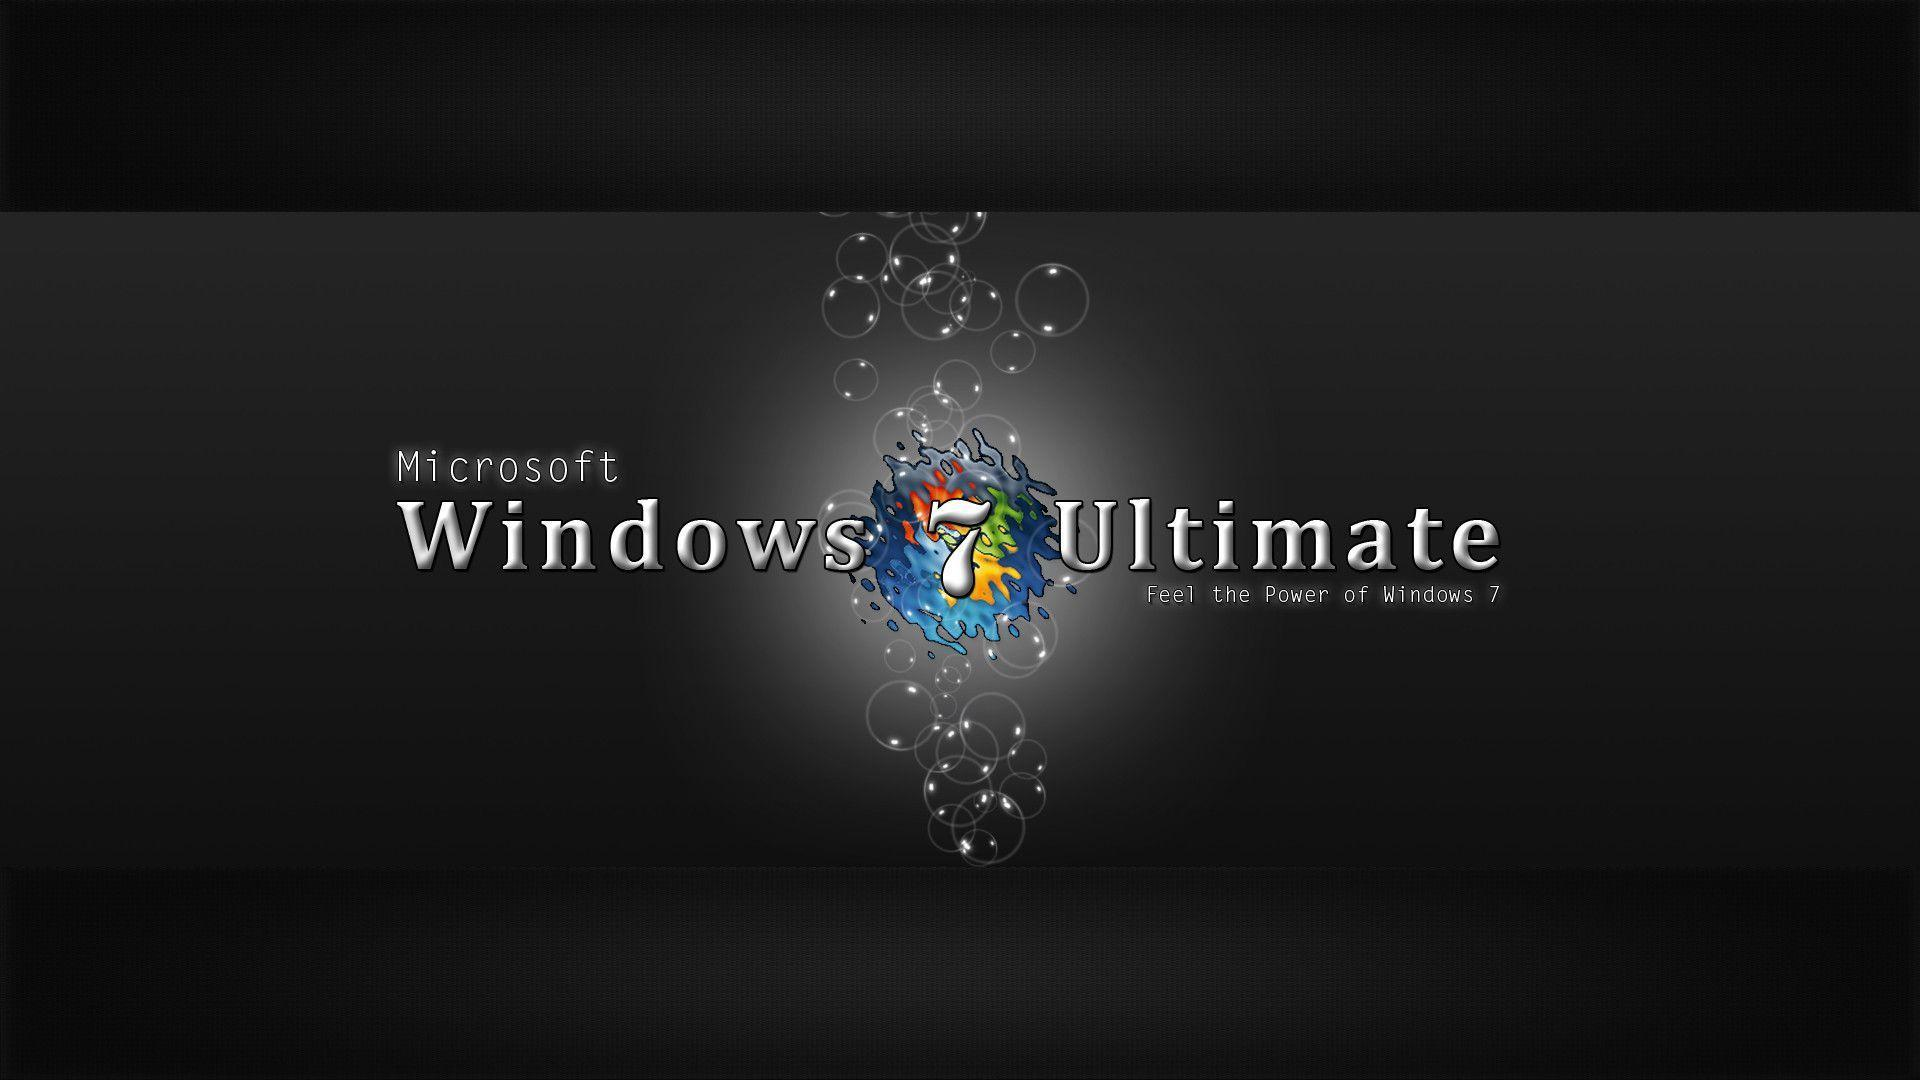 windows 7 ultimate duvar kağıtları windows 7 ultimate